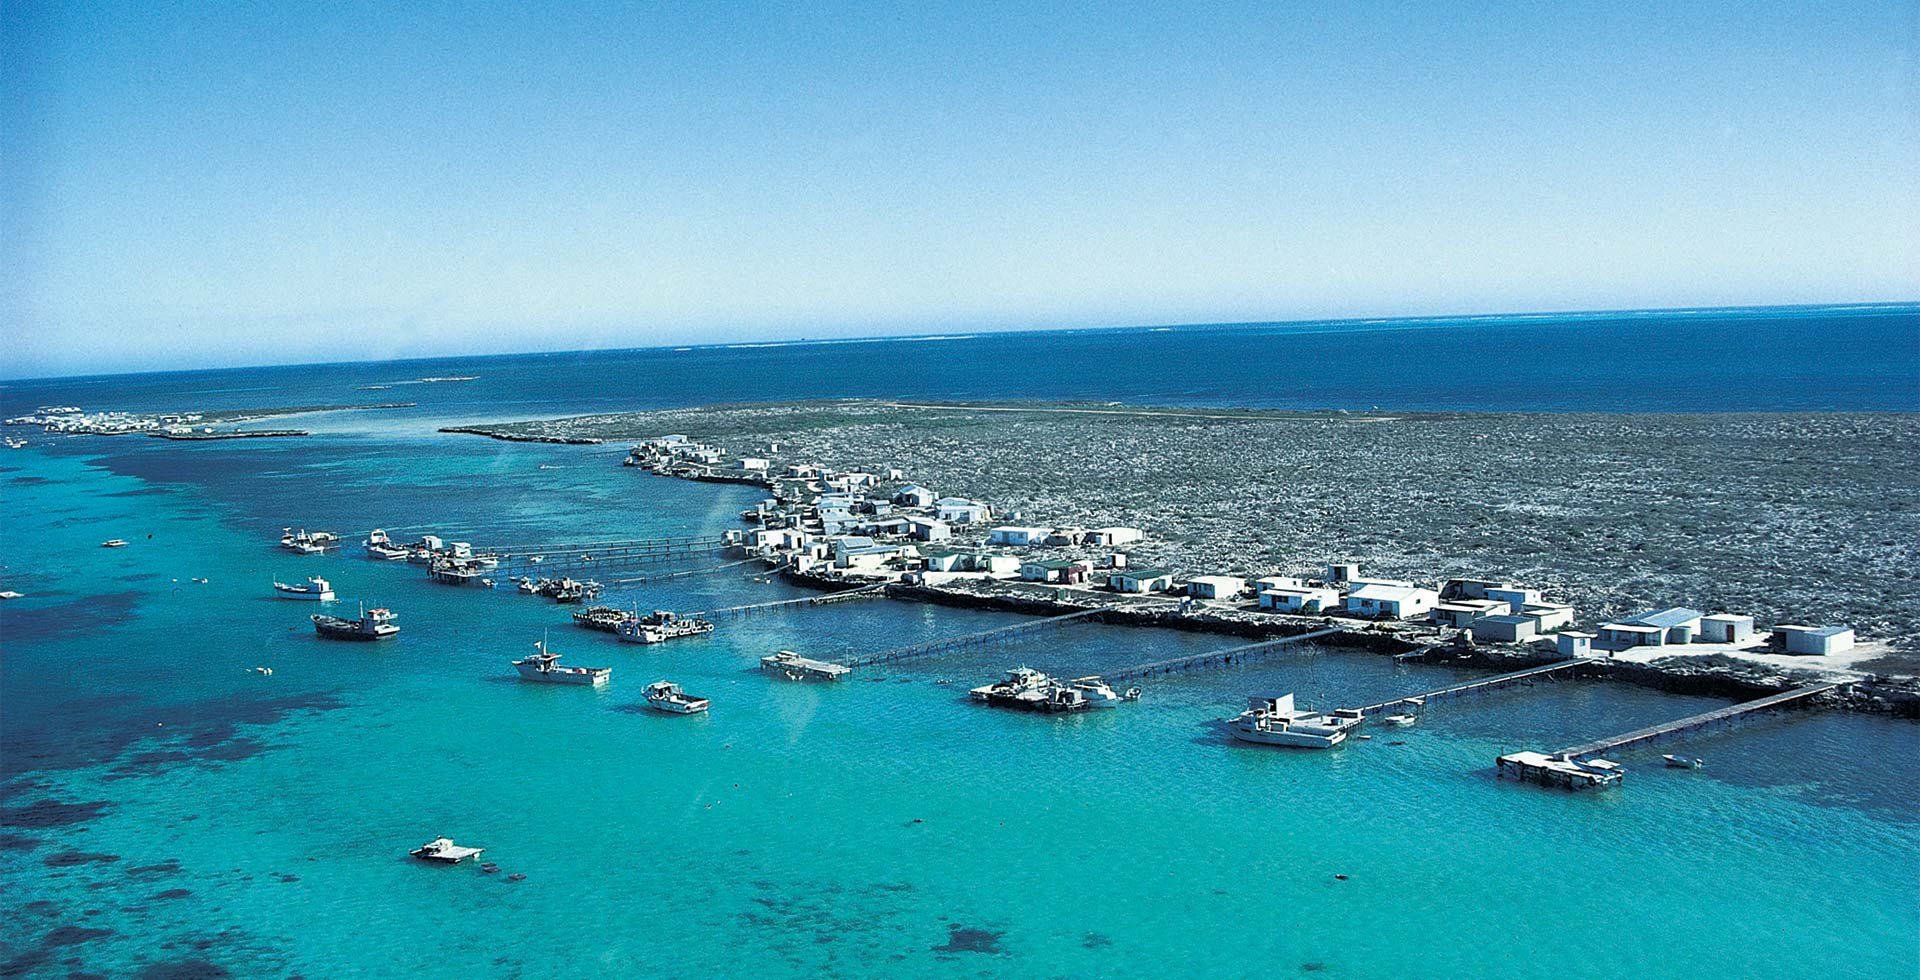 Discover the amazing Fishing Shacks in Geraldton